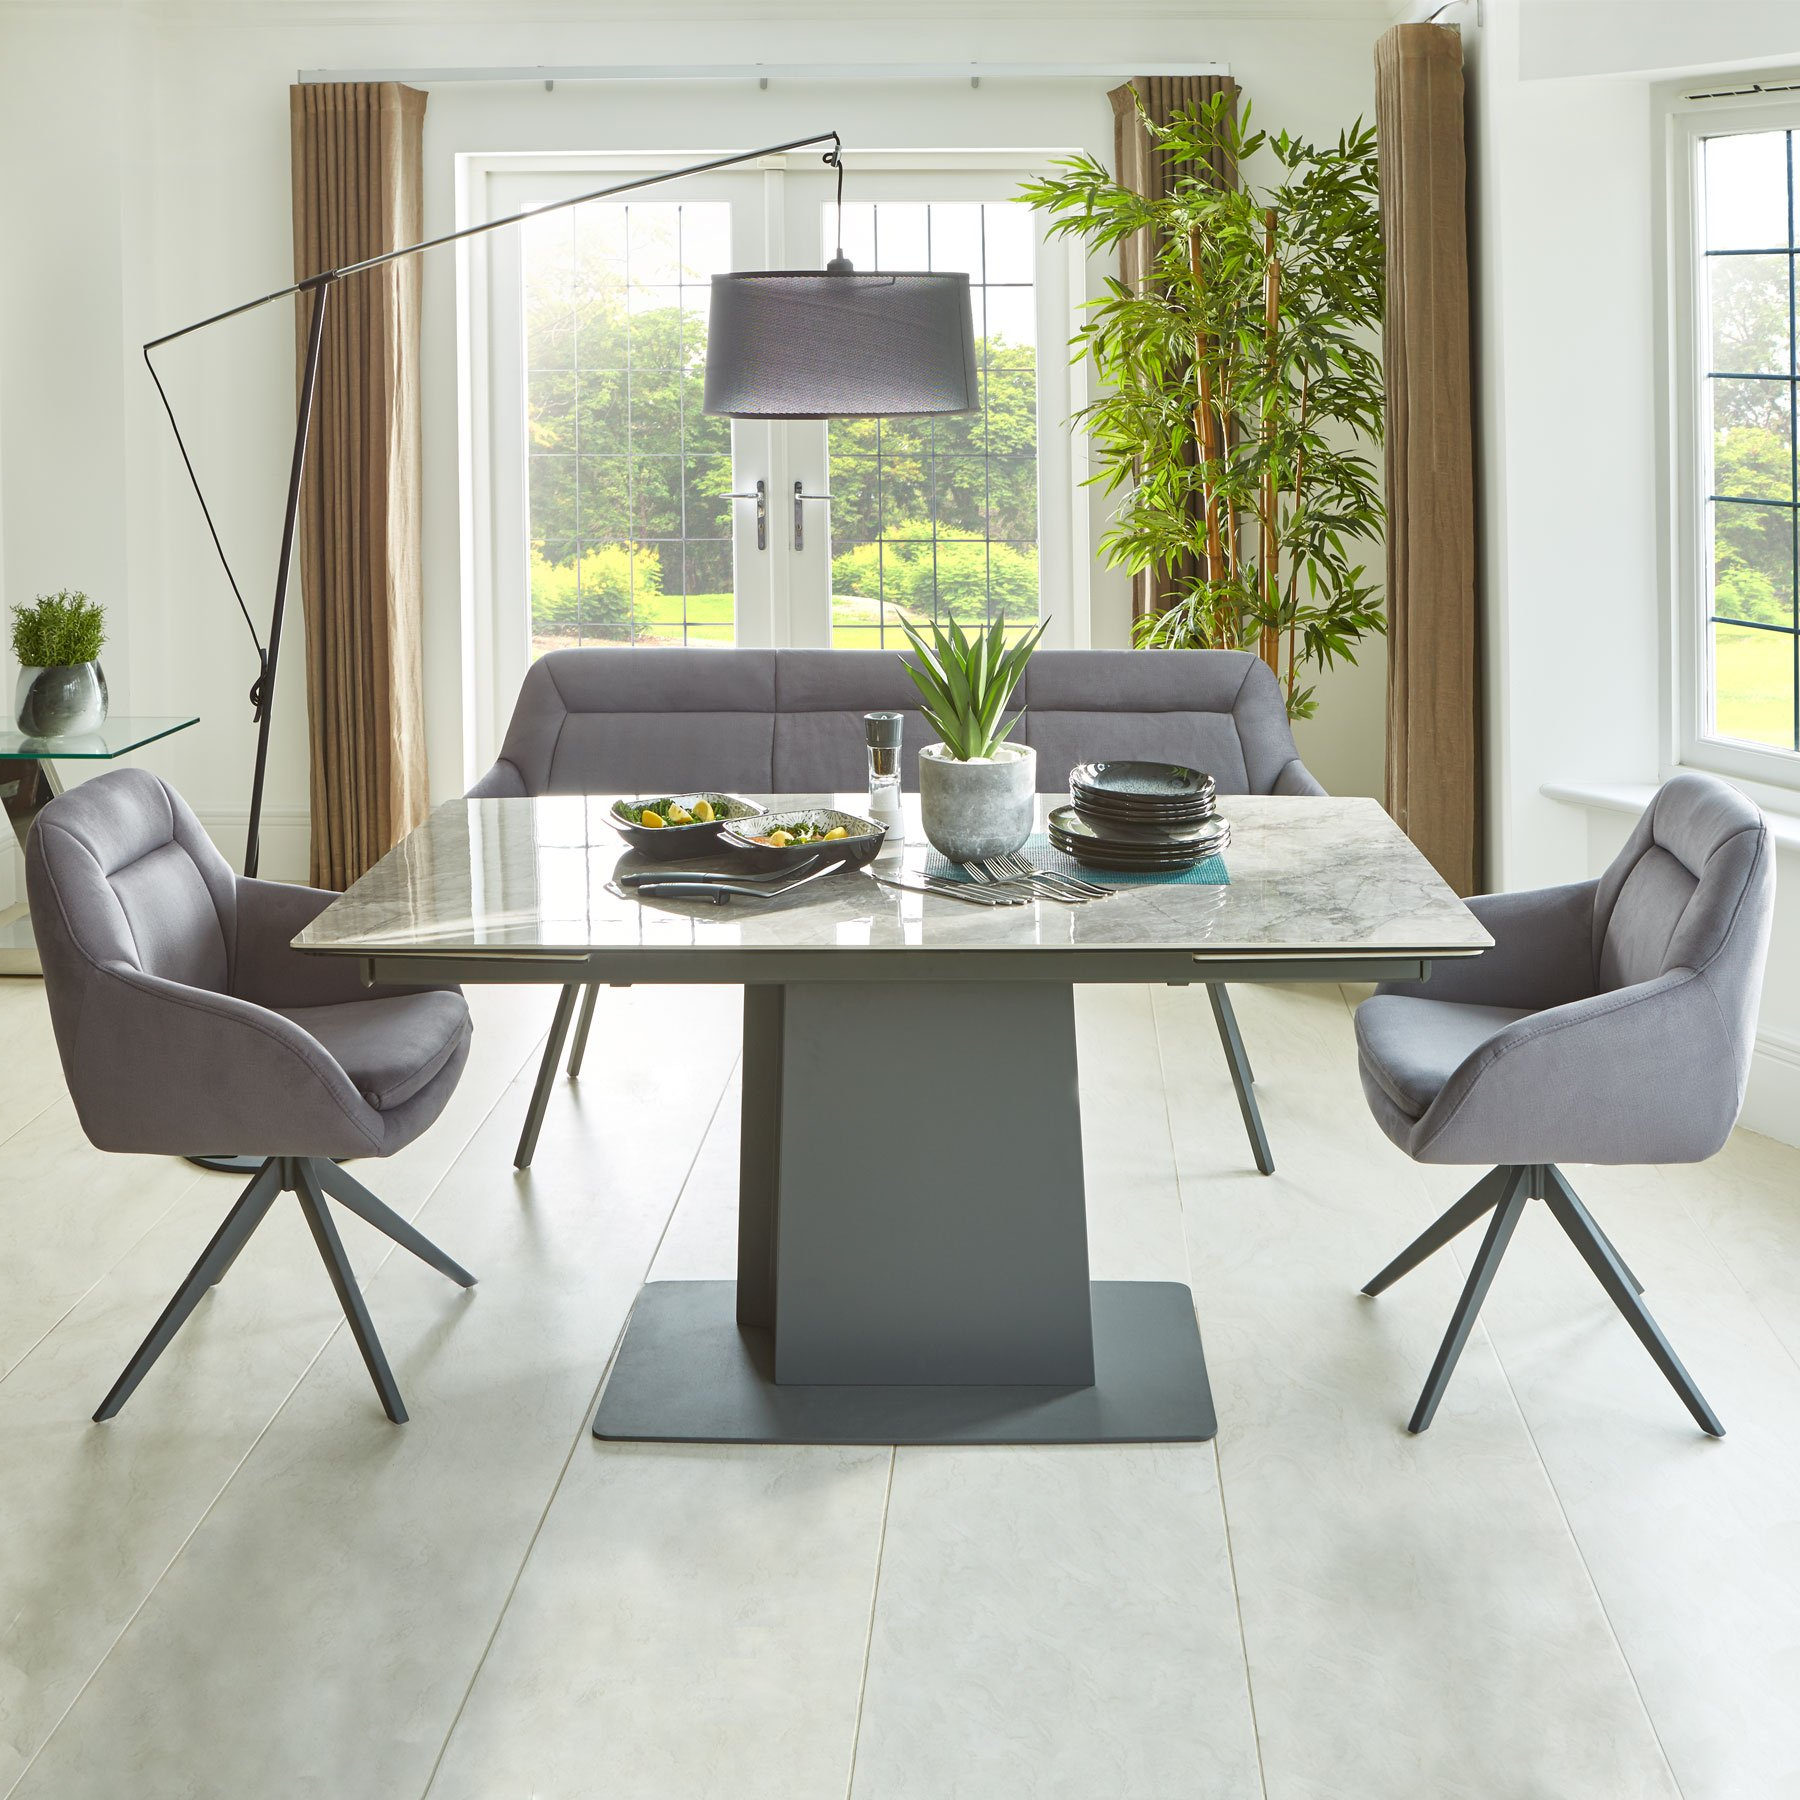 Reed Extending Dining Tables with Best and Newest Ideas About Extending Dining Bench, - Howellmagic Dining